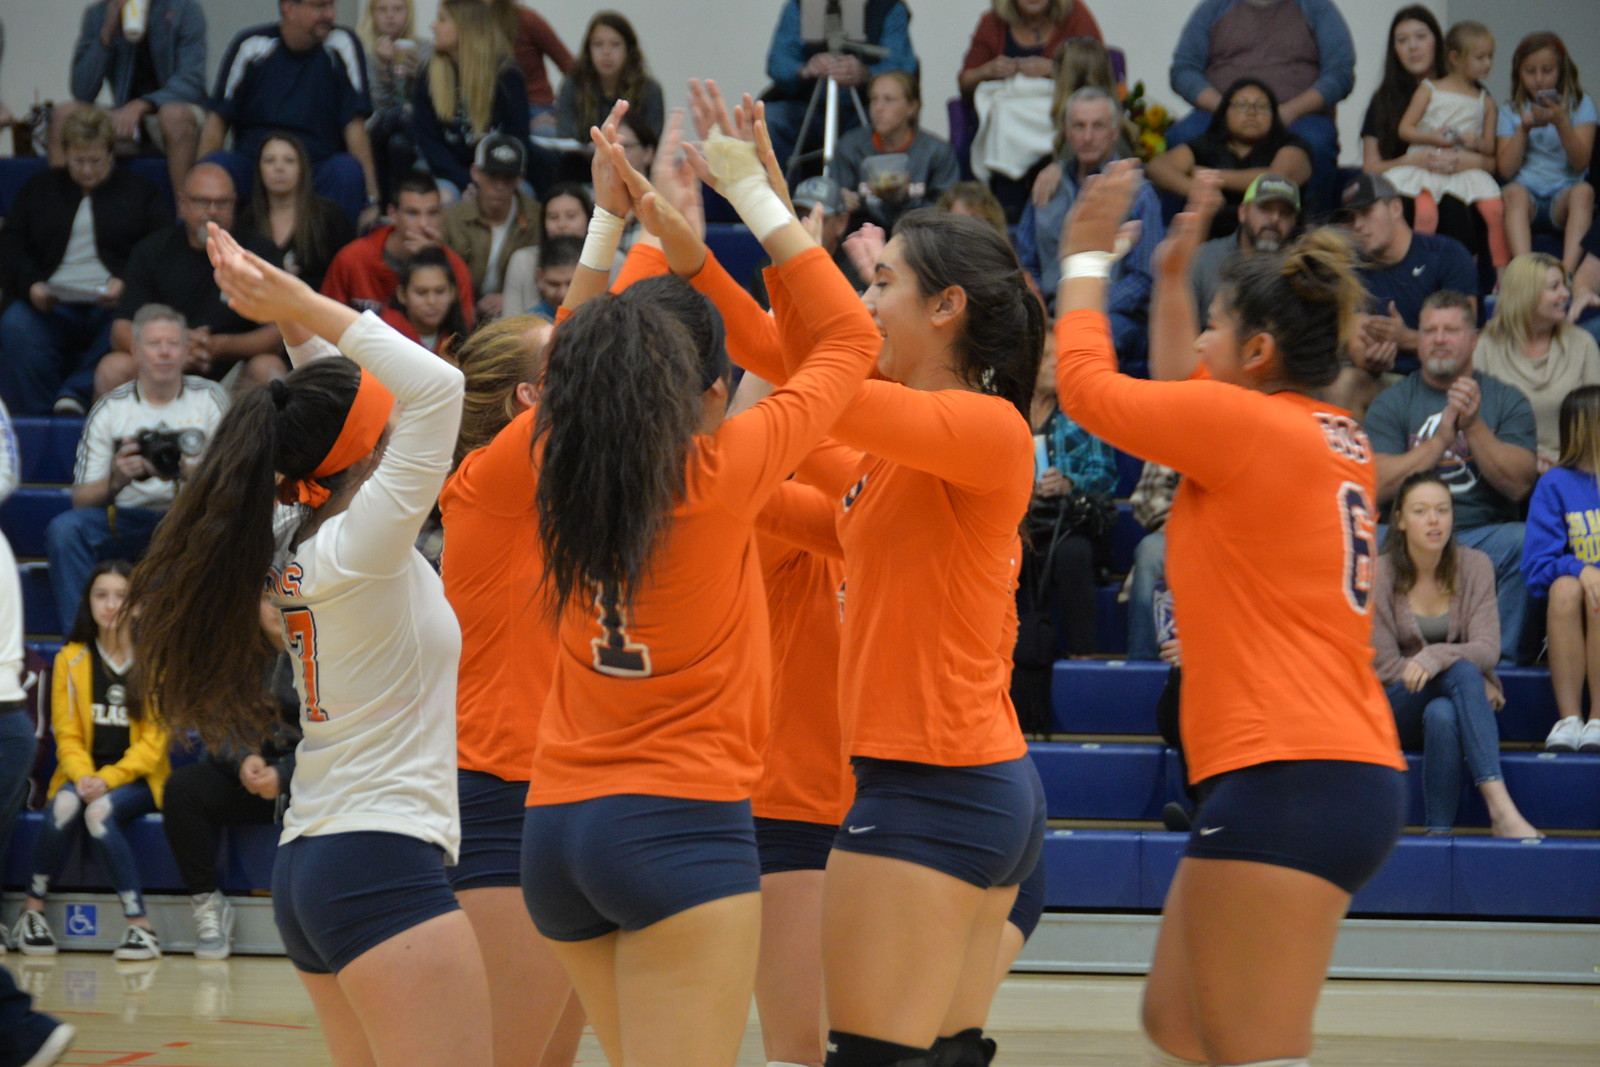 COS Volleyball clapping hands in a match earlier this year.